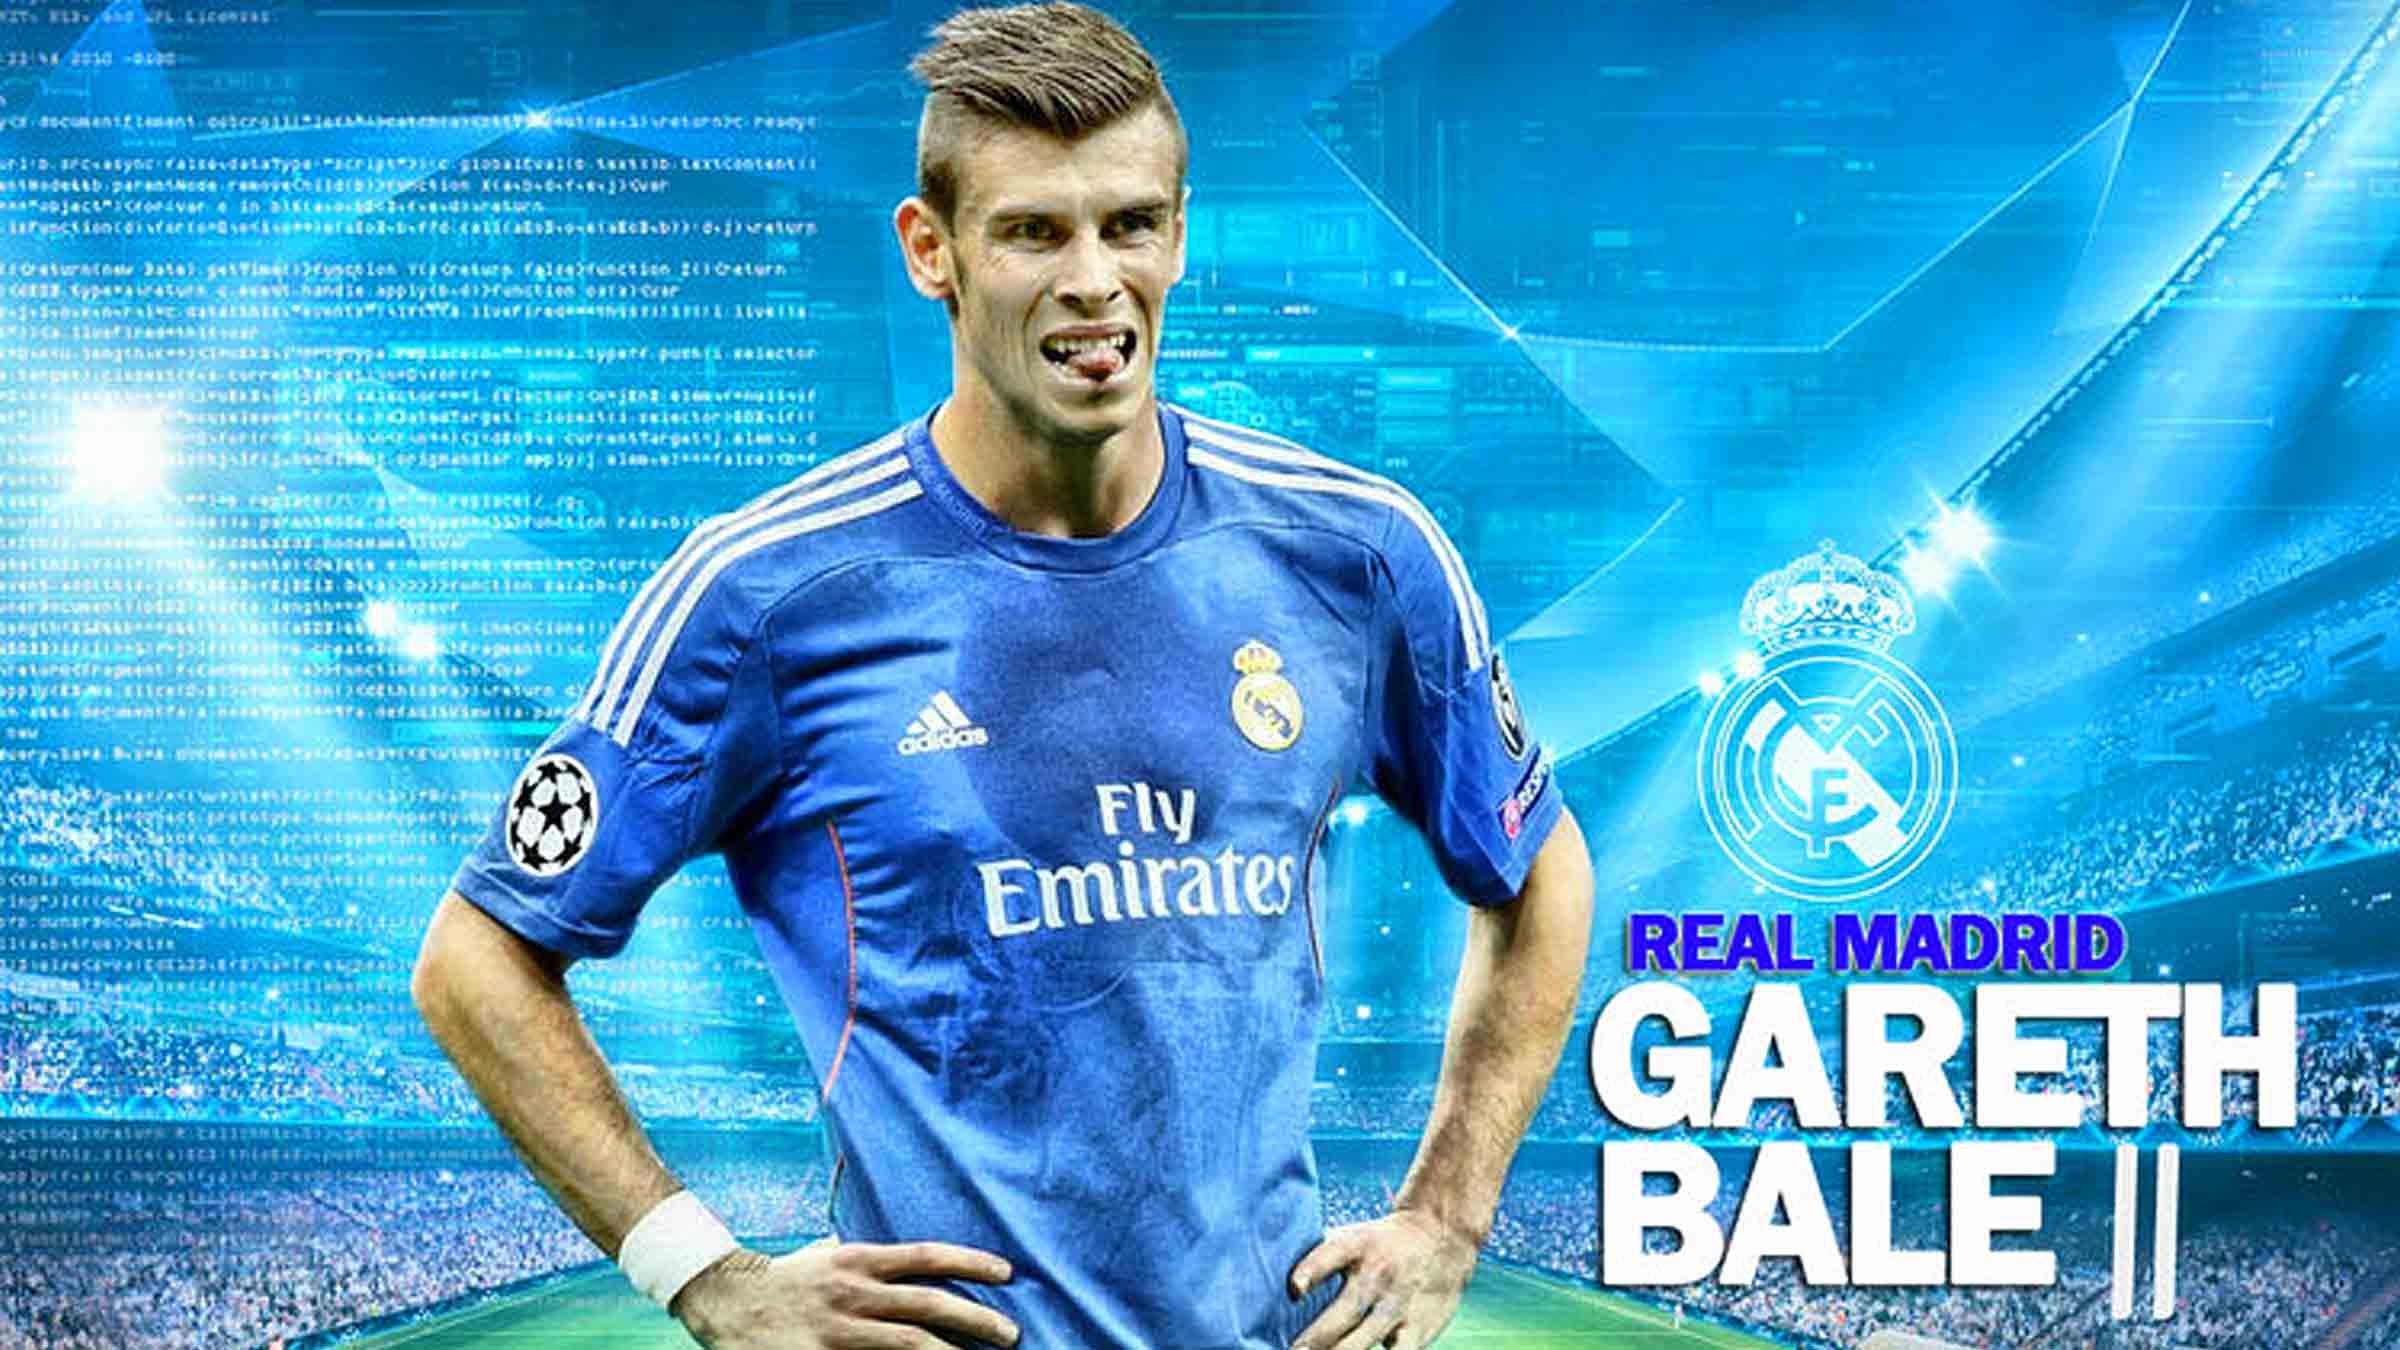 real madrid gareth bale 2014 wallpapers hd | Wallput.